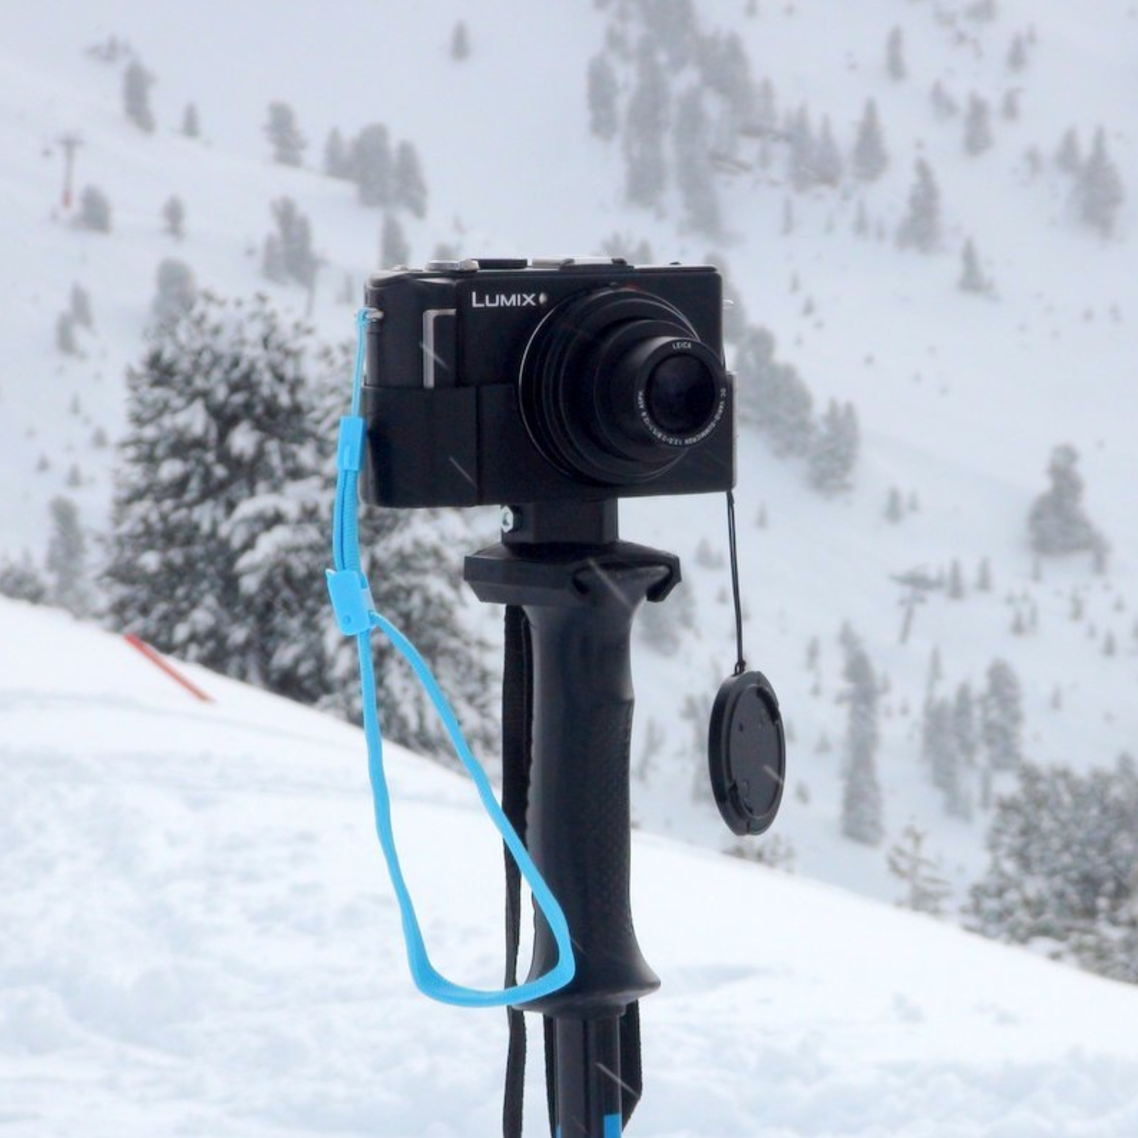 Capture d'écran 2016-12-02 à 17.39.31.png Download free STL file Ski pole camera tripod adapter • 3D printing design, mschiller